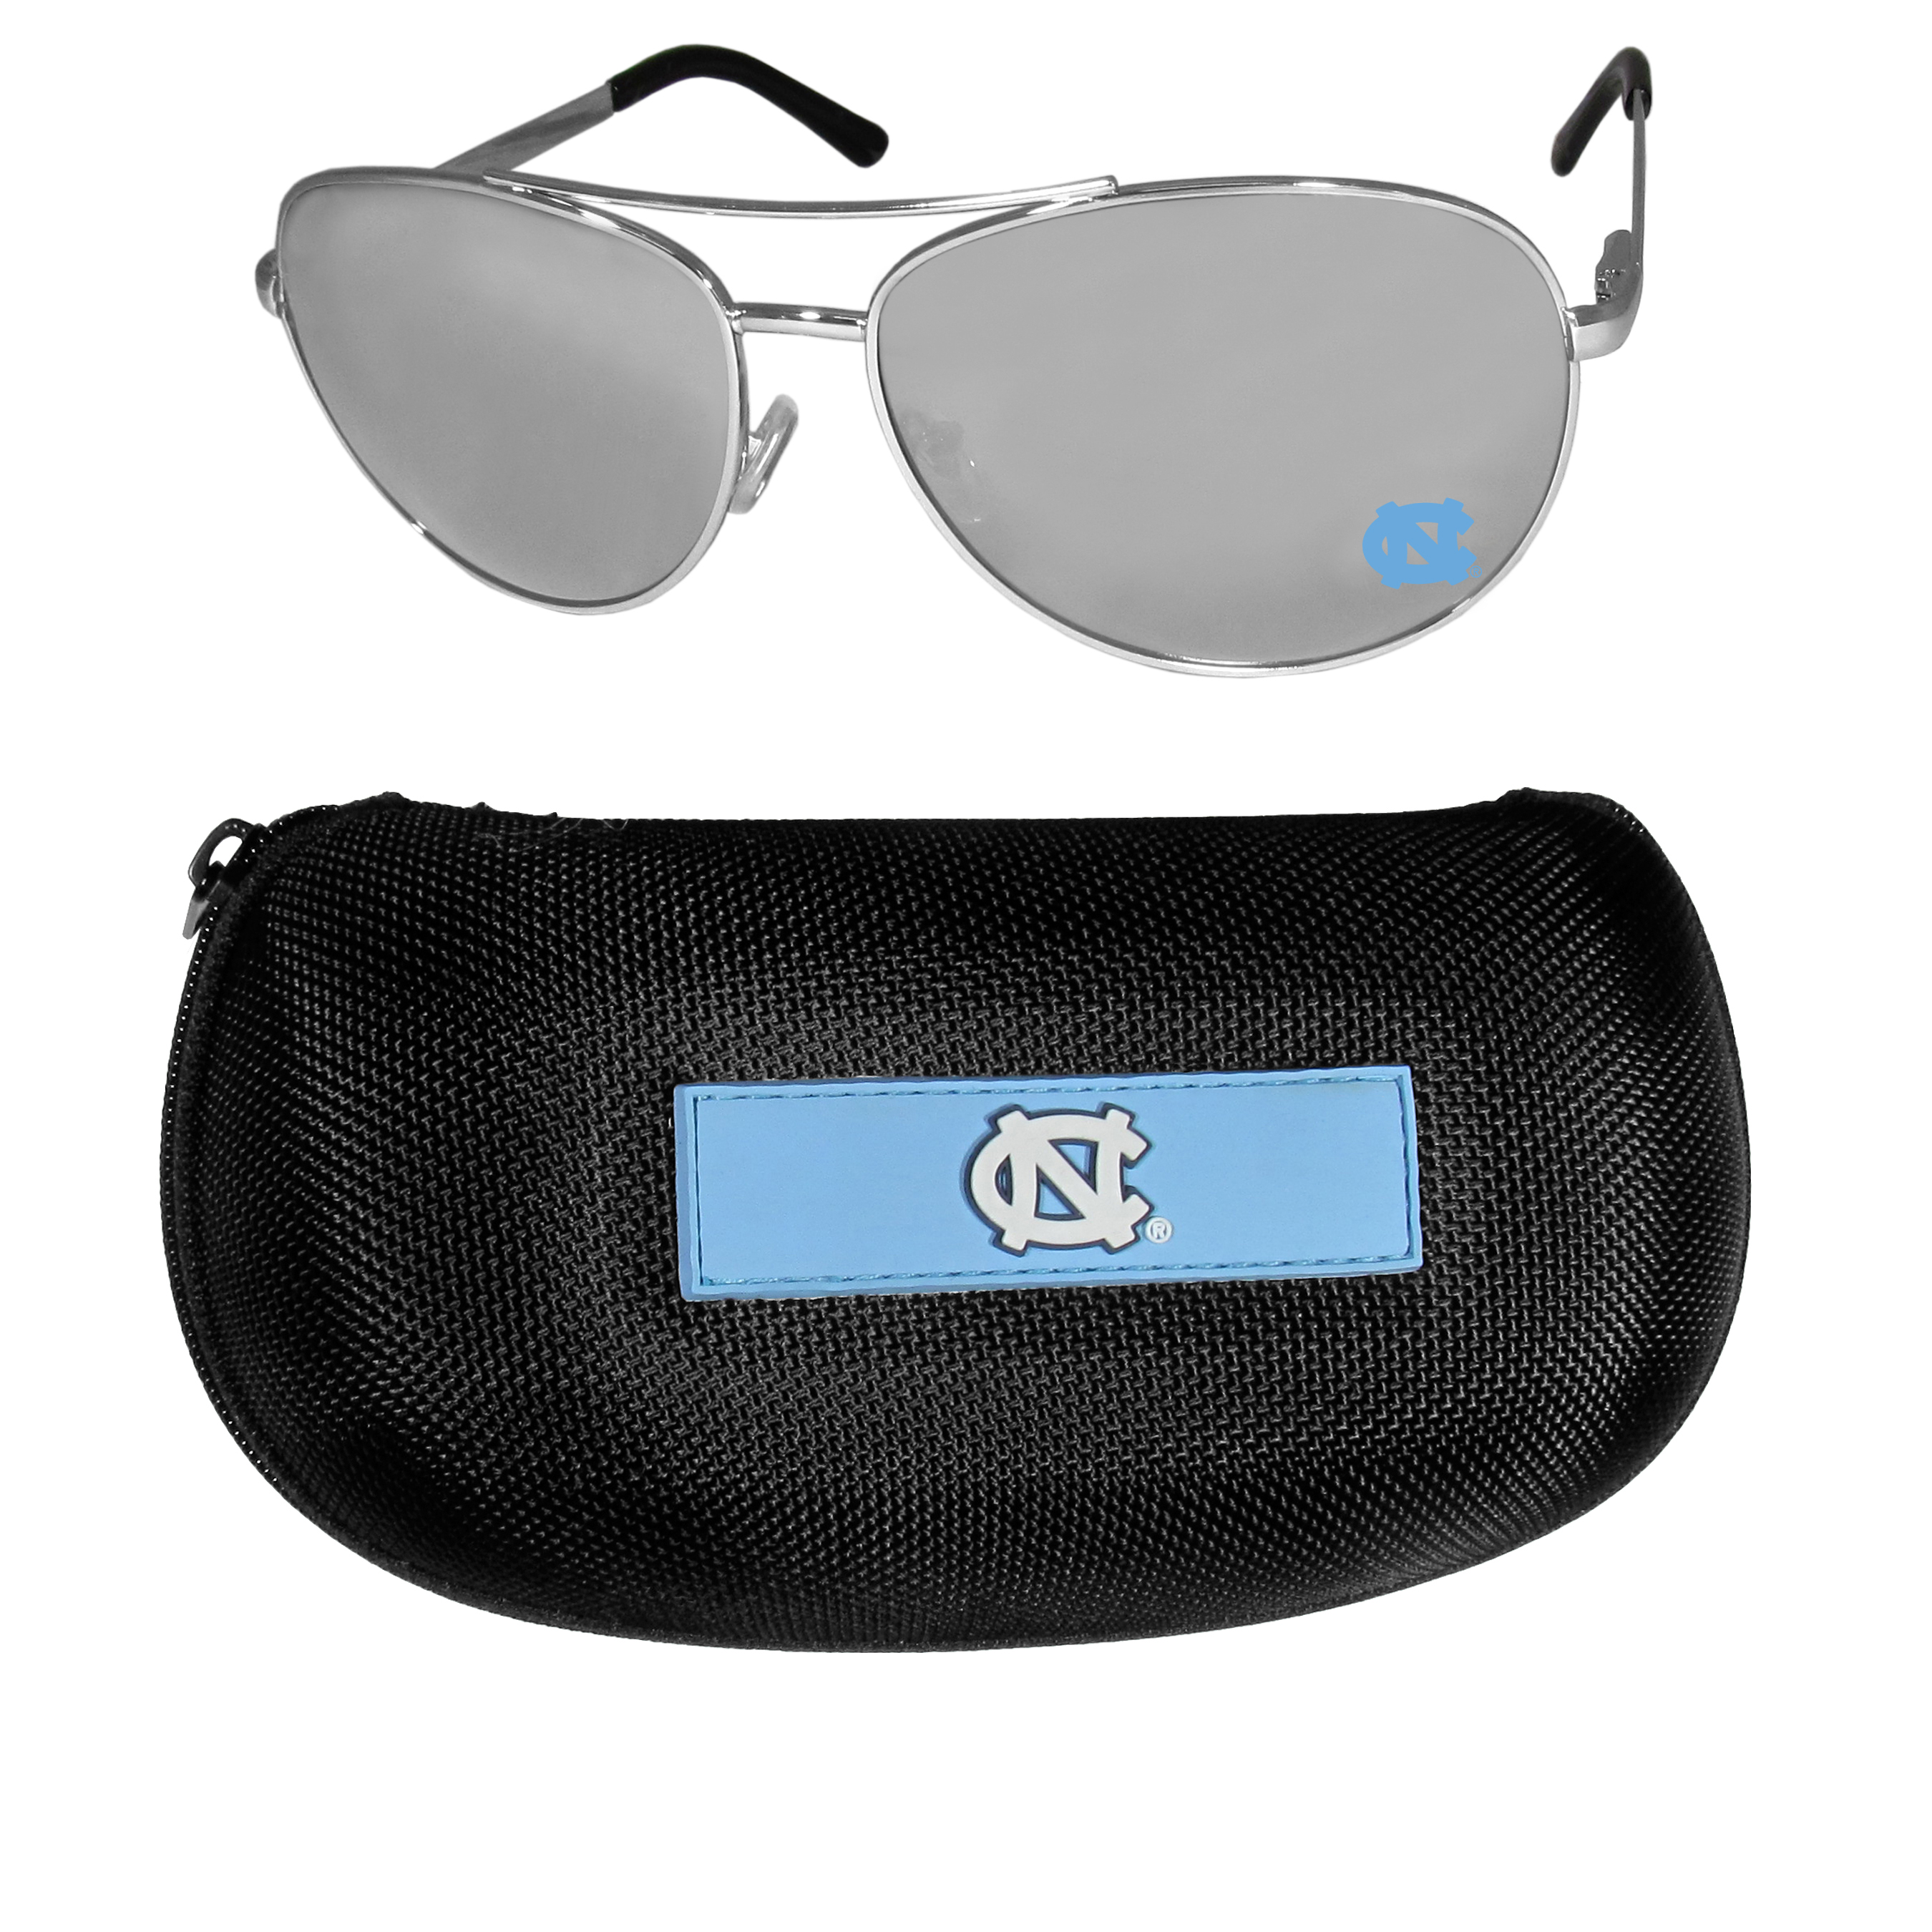 N. Carolina Tar Heels Aviator Sunglasses and Zippered Carrying Case - Aviator sunglasses are truly an iconic retro fashion statement that never goes out-of-style. Our N. Carolina Tar Heels  aviator sunglasses pair this classic look with your love of the game. The iridium coated lenses reduce glare while driving, boating, golfing and their 100% UVA/UVB rating provides you with the maximum UV protection for all your outdoor activities. A millennial favorite, these affordable designer frames are the perfect eyewear accessory for a sports fan that is looking for high-quality at an affordable price. The durable, flex hinged frames are tough enough for hiking and camping or if you prefer sun bathing by the pool or on the beach these shades will really stand the test of time. The sunglasses come with a hard shell zippered case which has a large team logo on the lid that will make even the most die-hard fan proud!